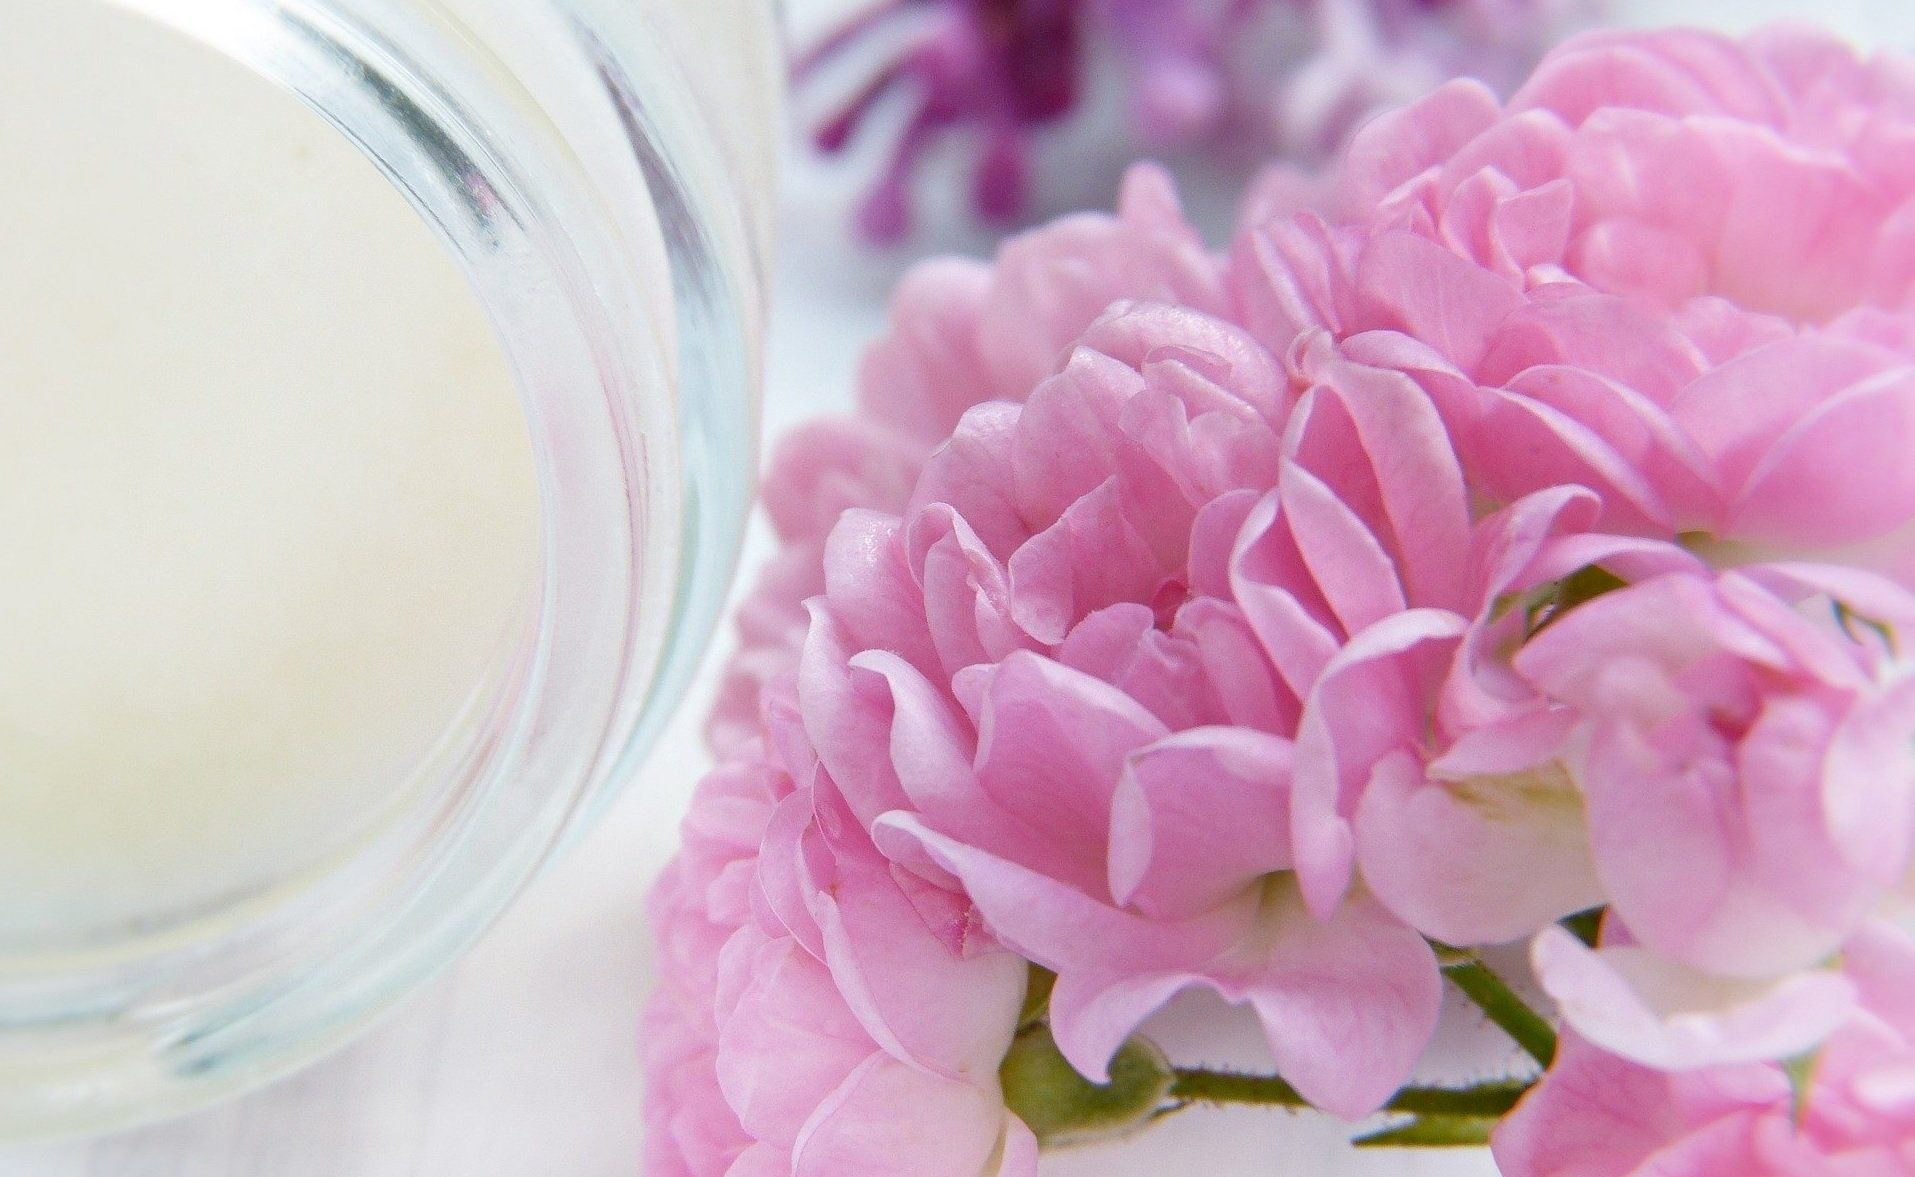 Jar of body lotion with pink flower